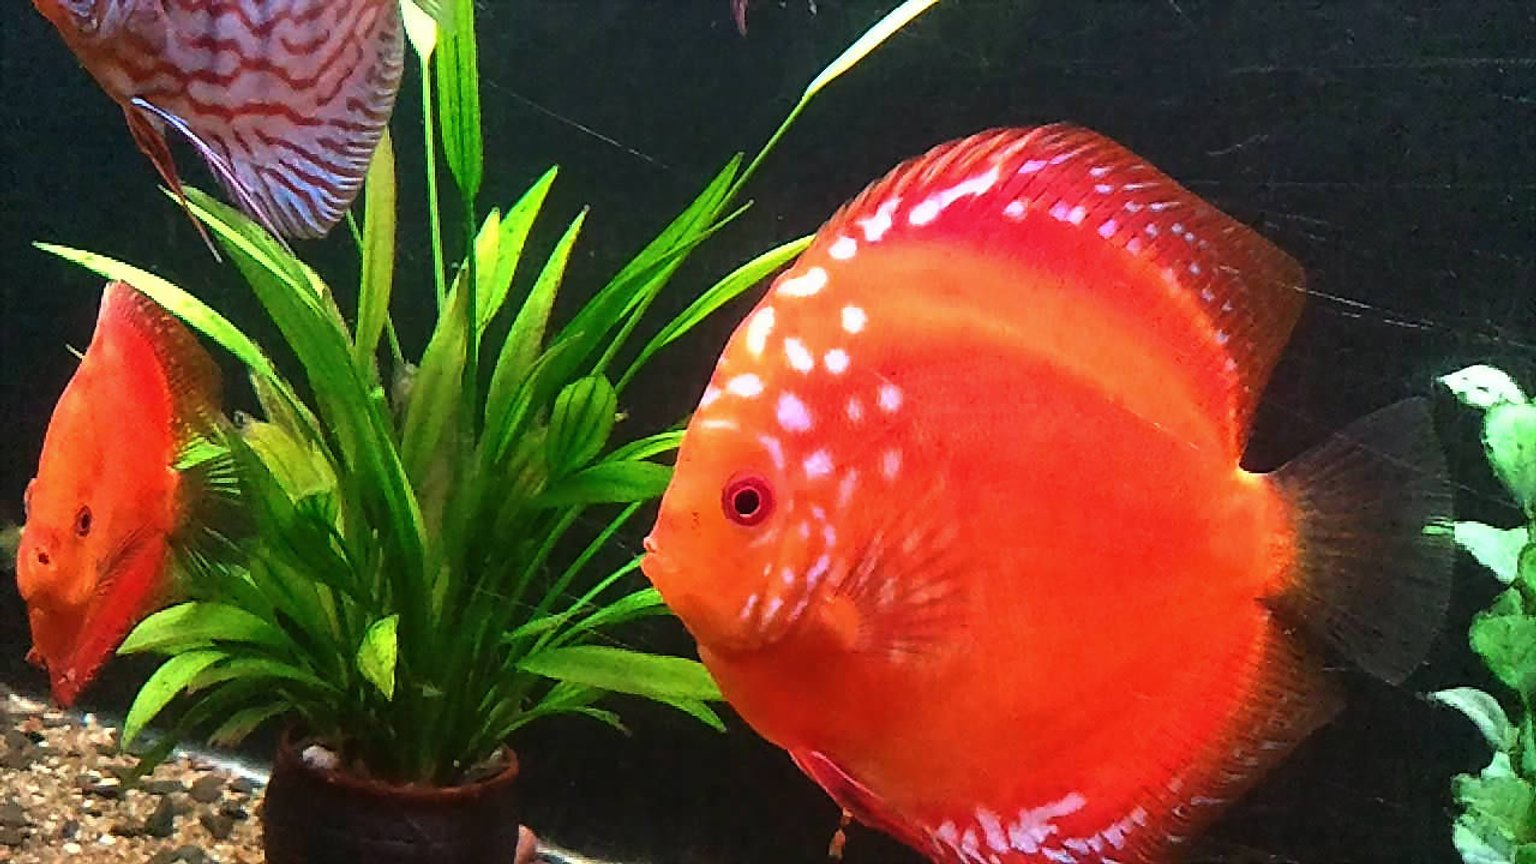 freshwater fish - symphysodon sp. - red marlboro discus stocking in 20 gallons tank - See my red malboro Discus